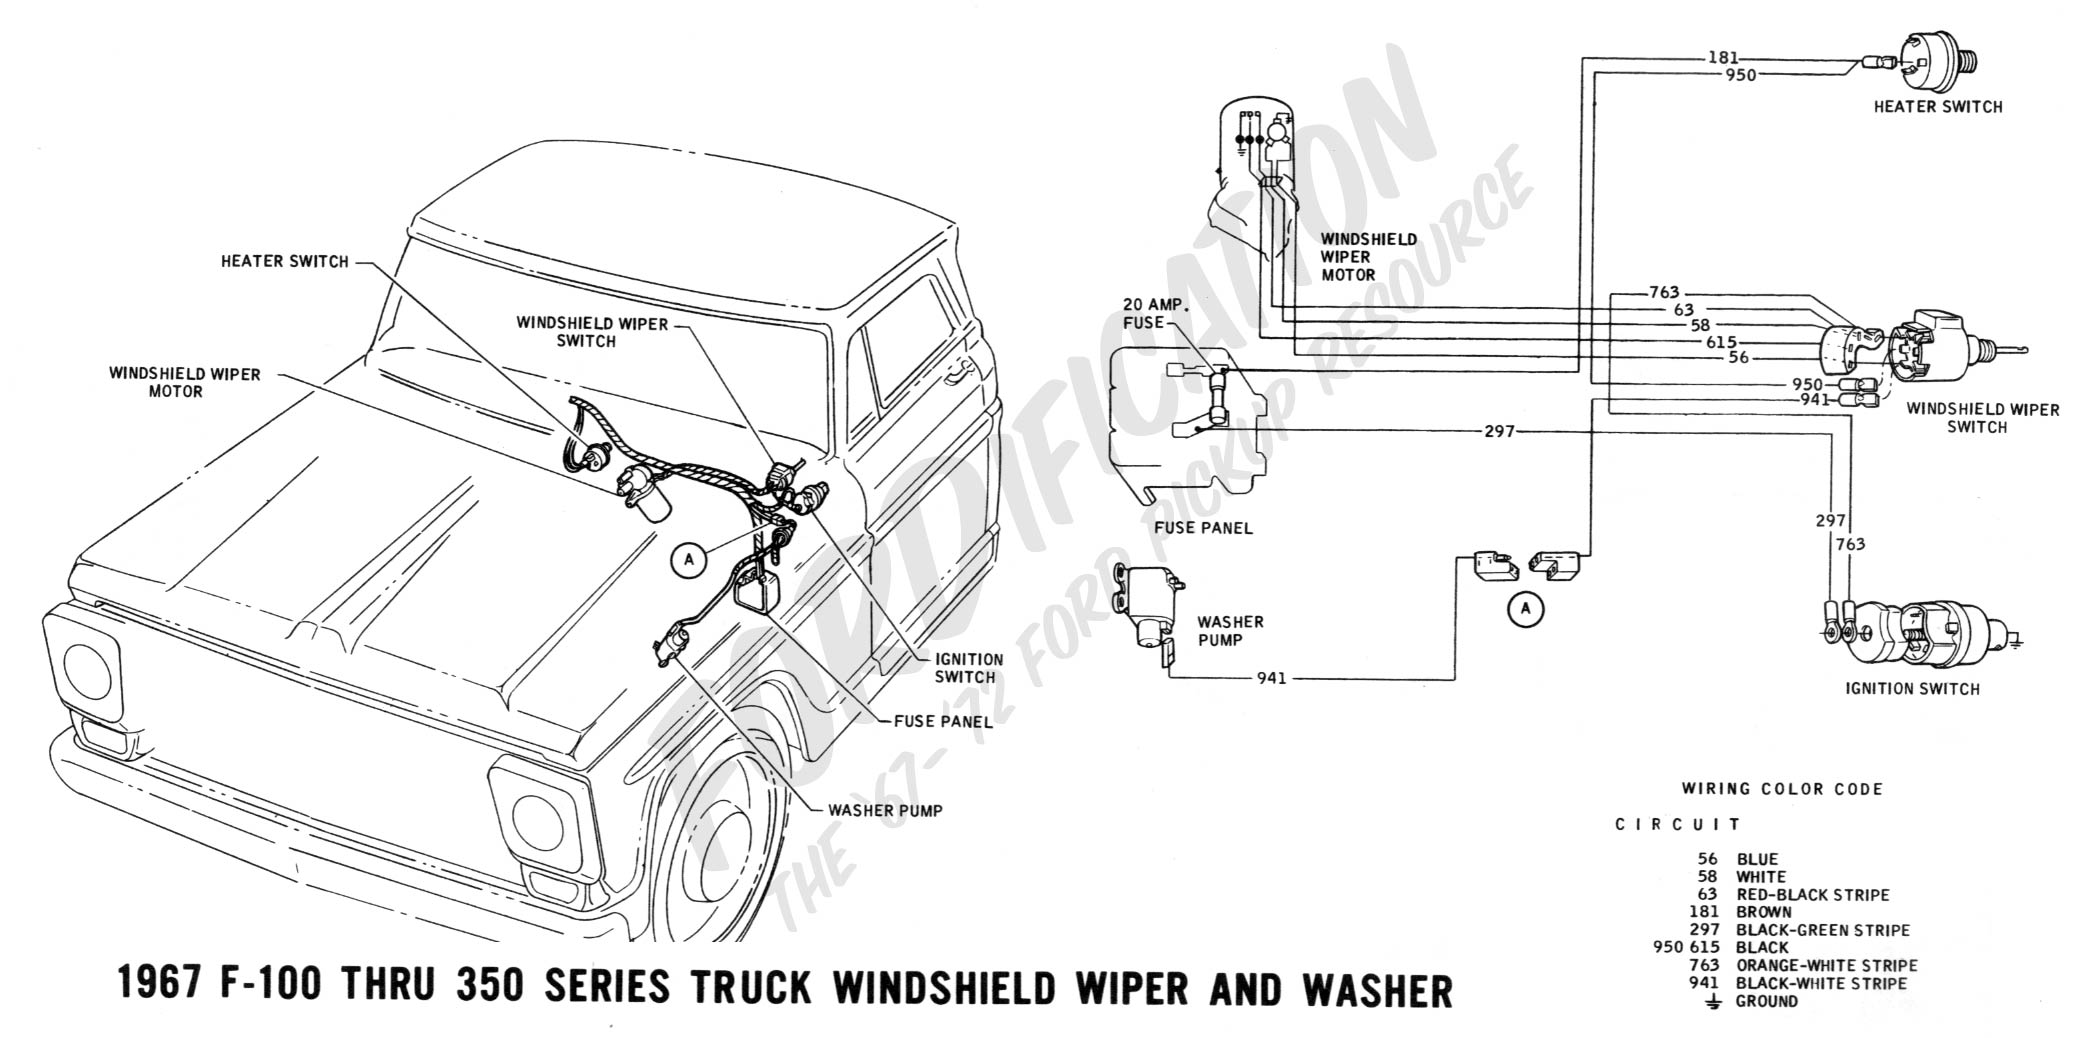 wiring 1967wipers ford truck technical drawings and schematics section h wiring 1966 ford truck wiring diagram at crackthecode.co